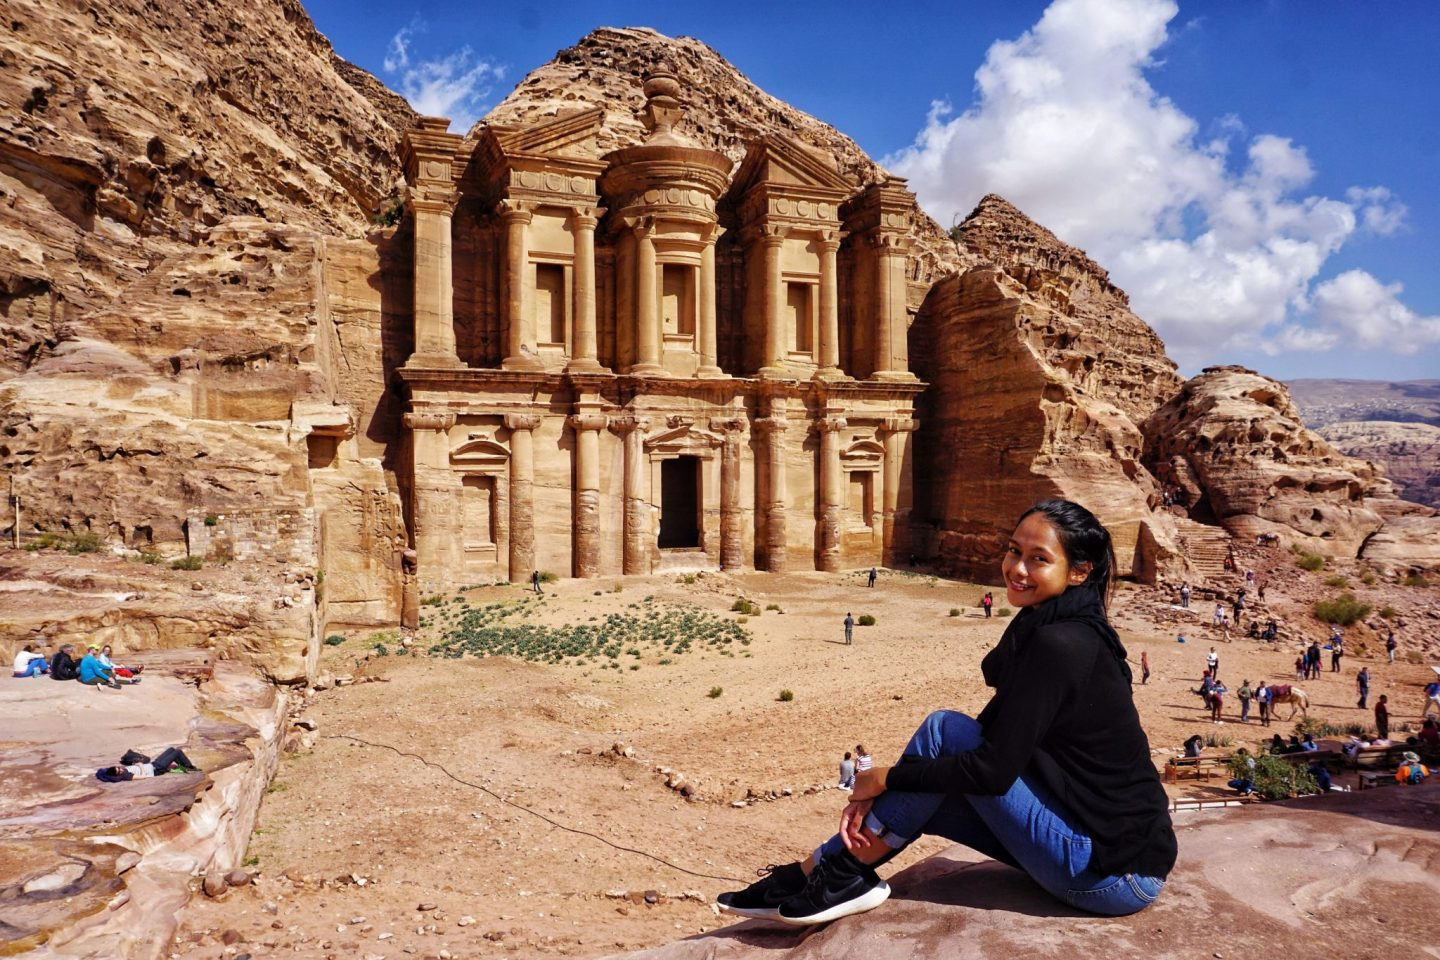 The Ultimate One Day Guide to Petra, Jordan